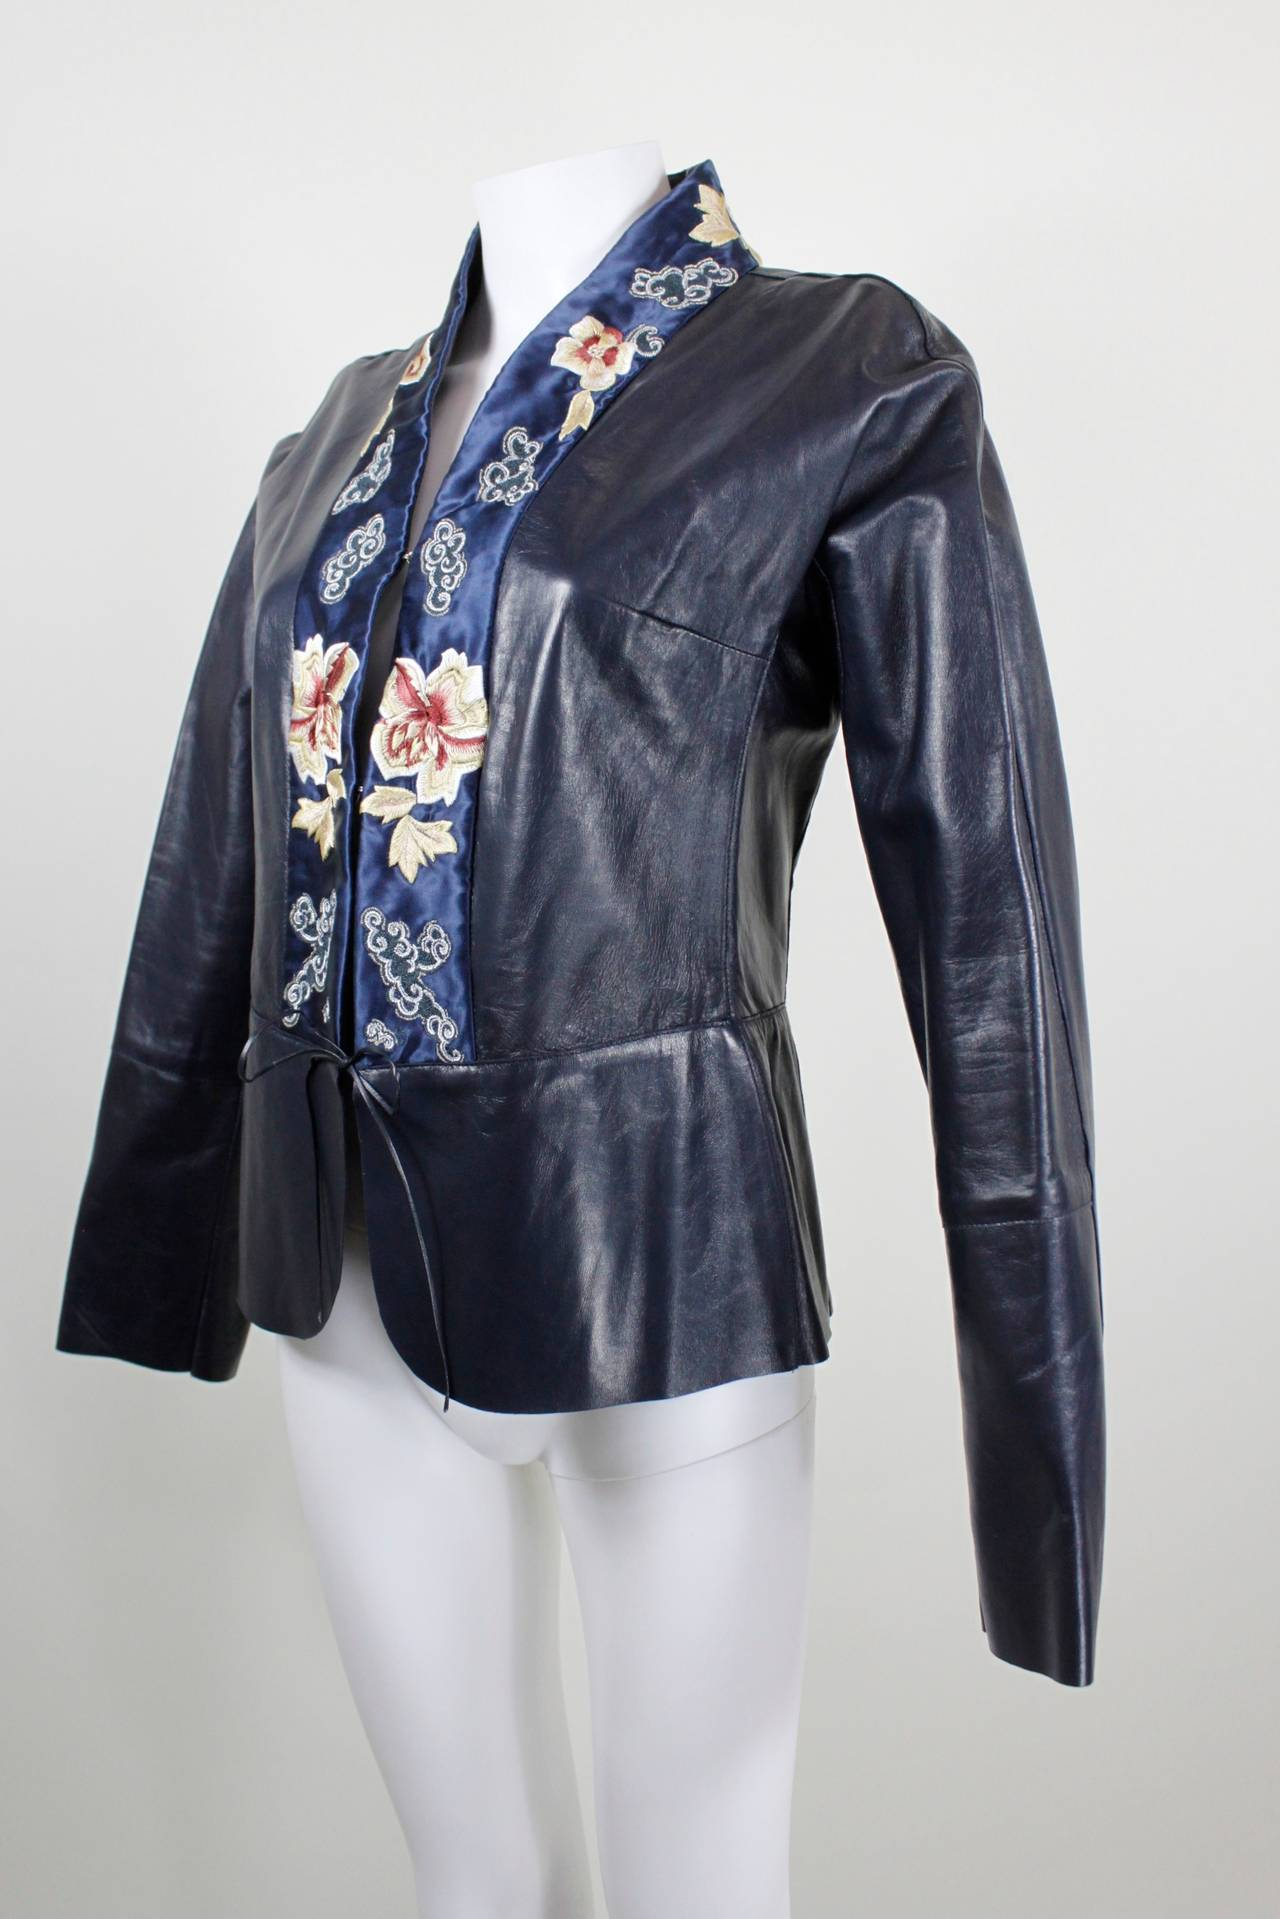 Women's Blumarine Navy Leather Jacket with Japanese Inspired Embroidery For Sale